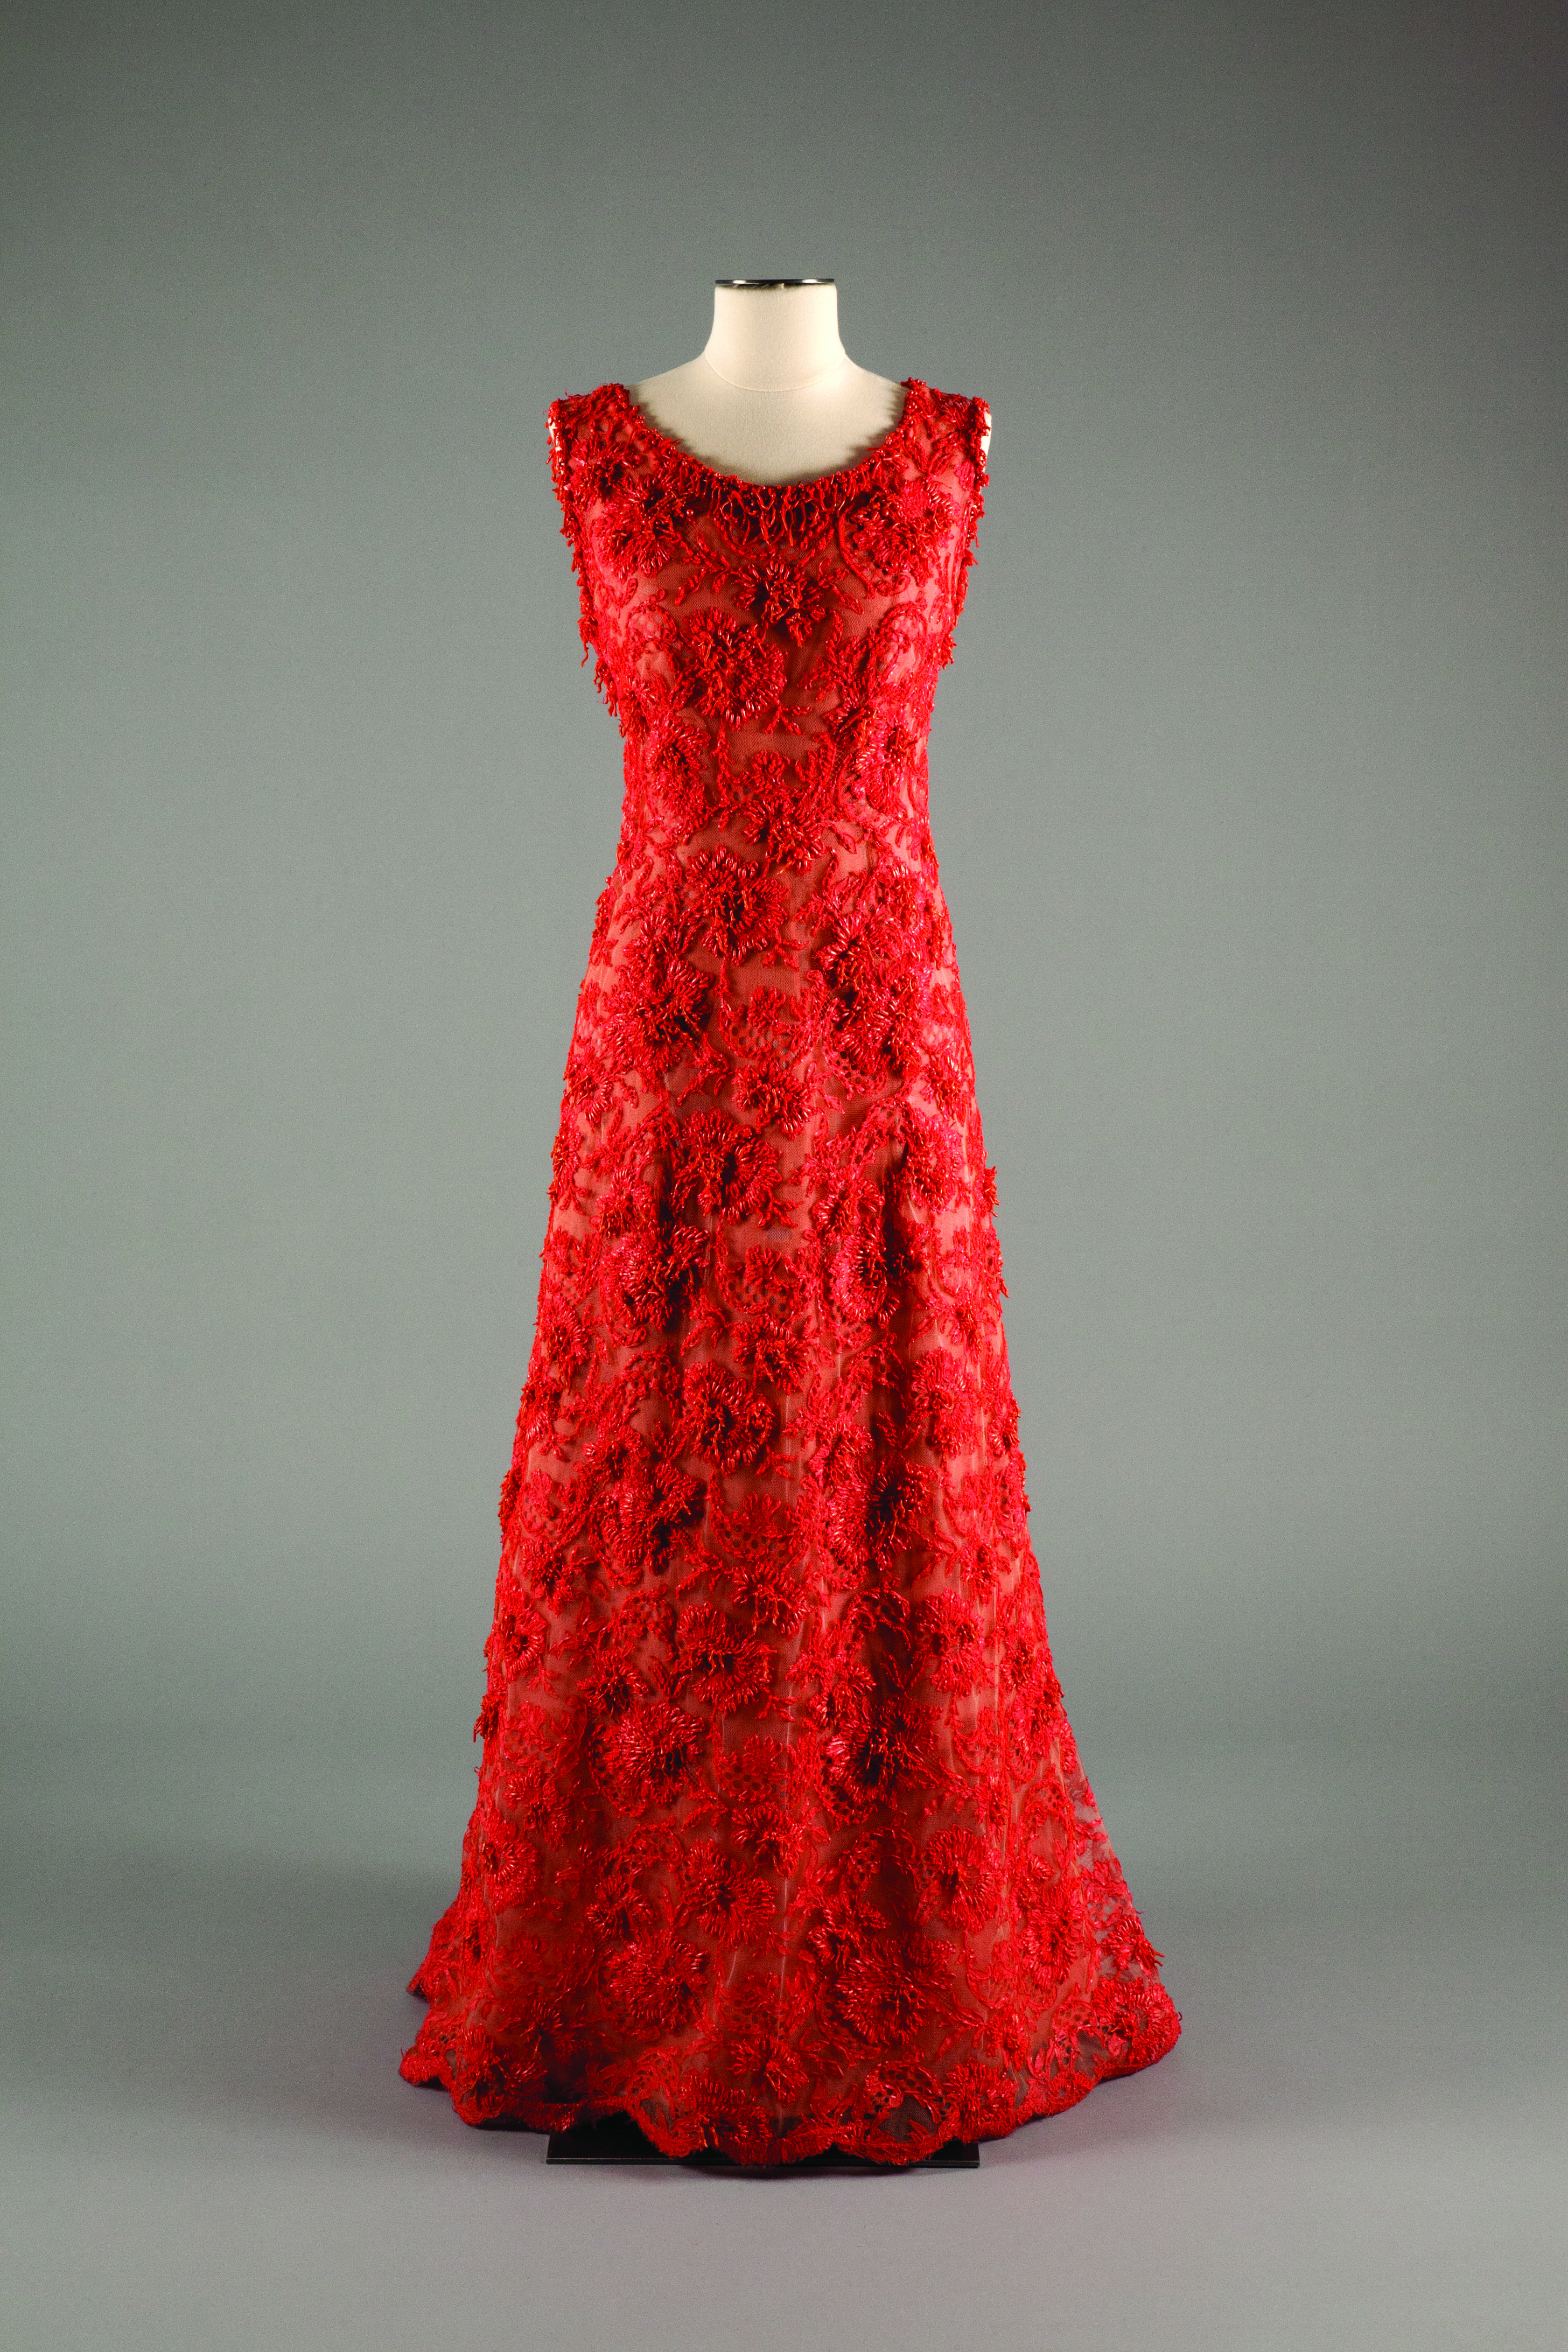 Hubert de Givenchy coral and lace evening gown worn by Her Serene Highness, Prince Grace of Monaco, circa 1964 France.